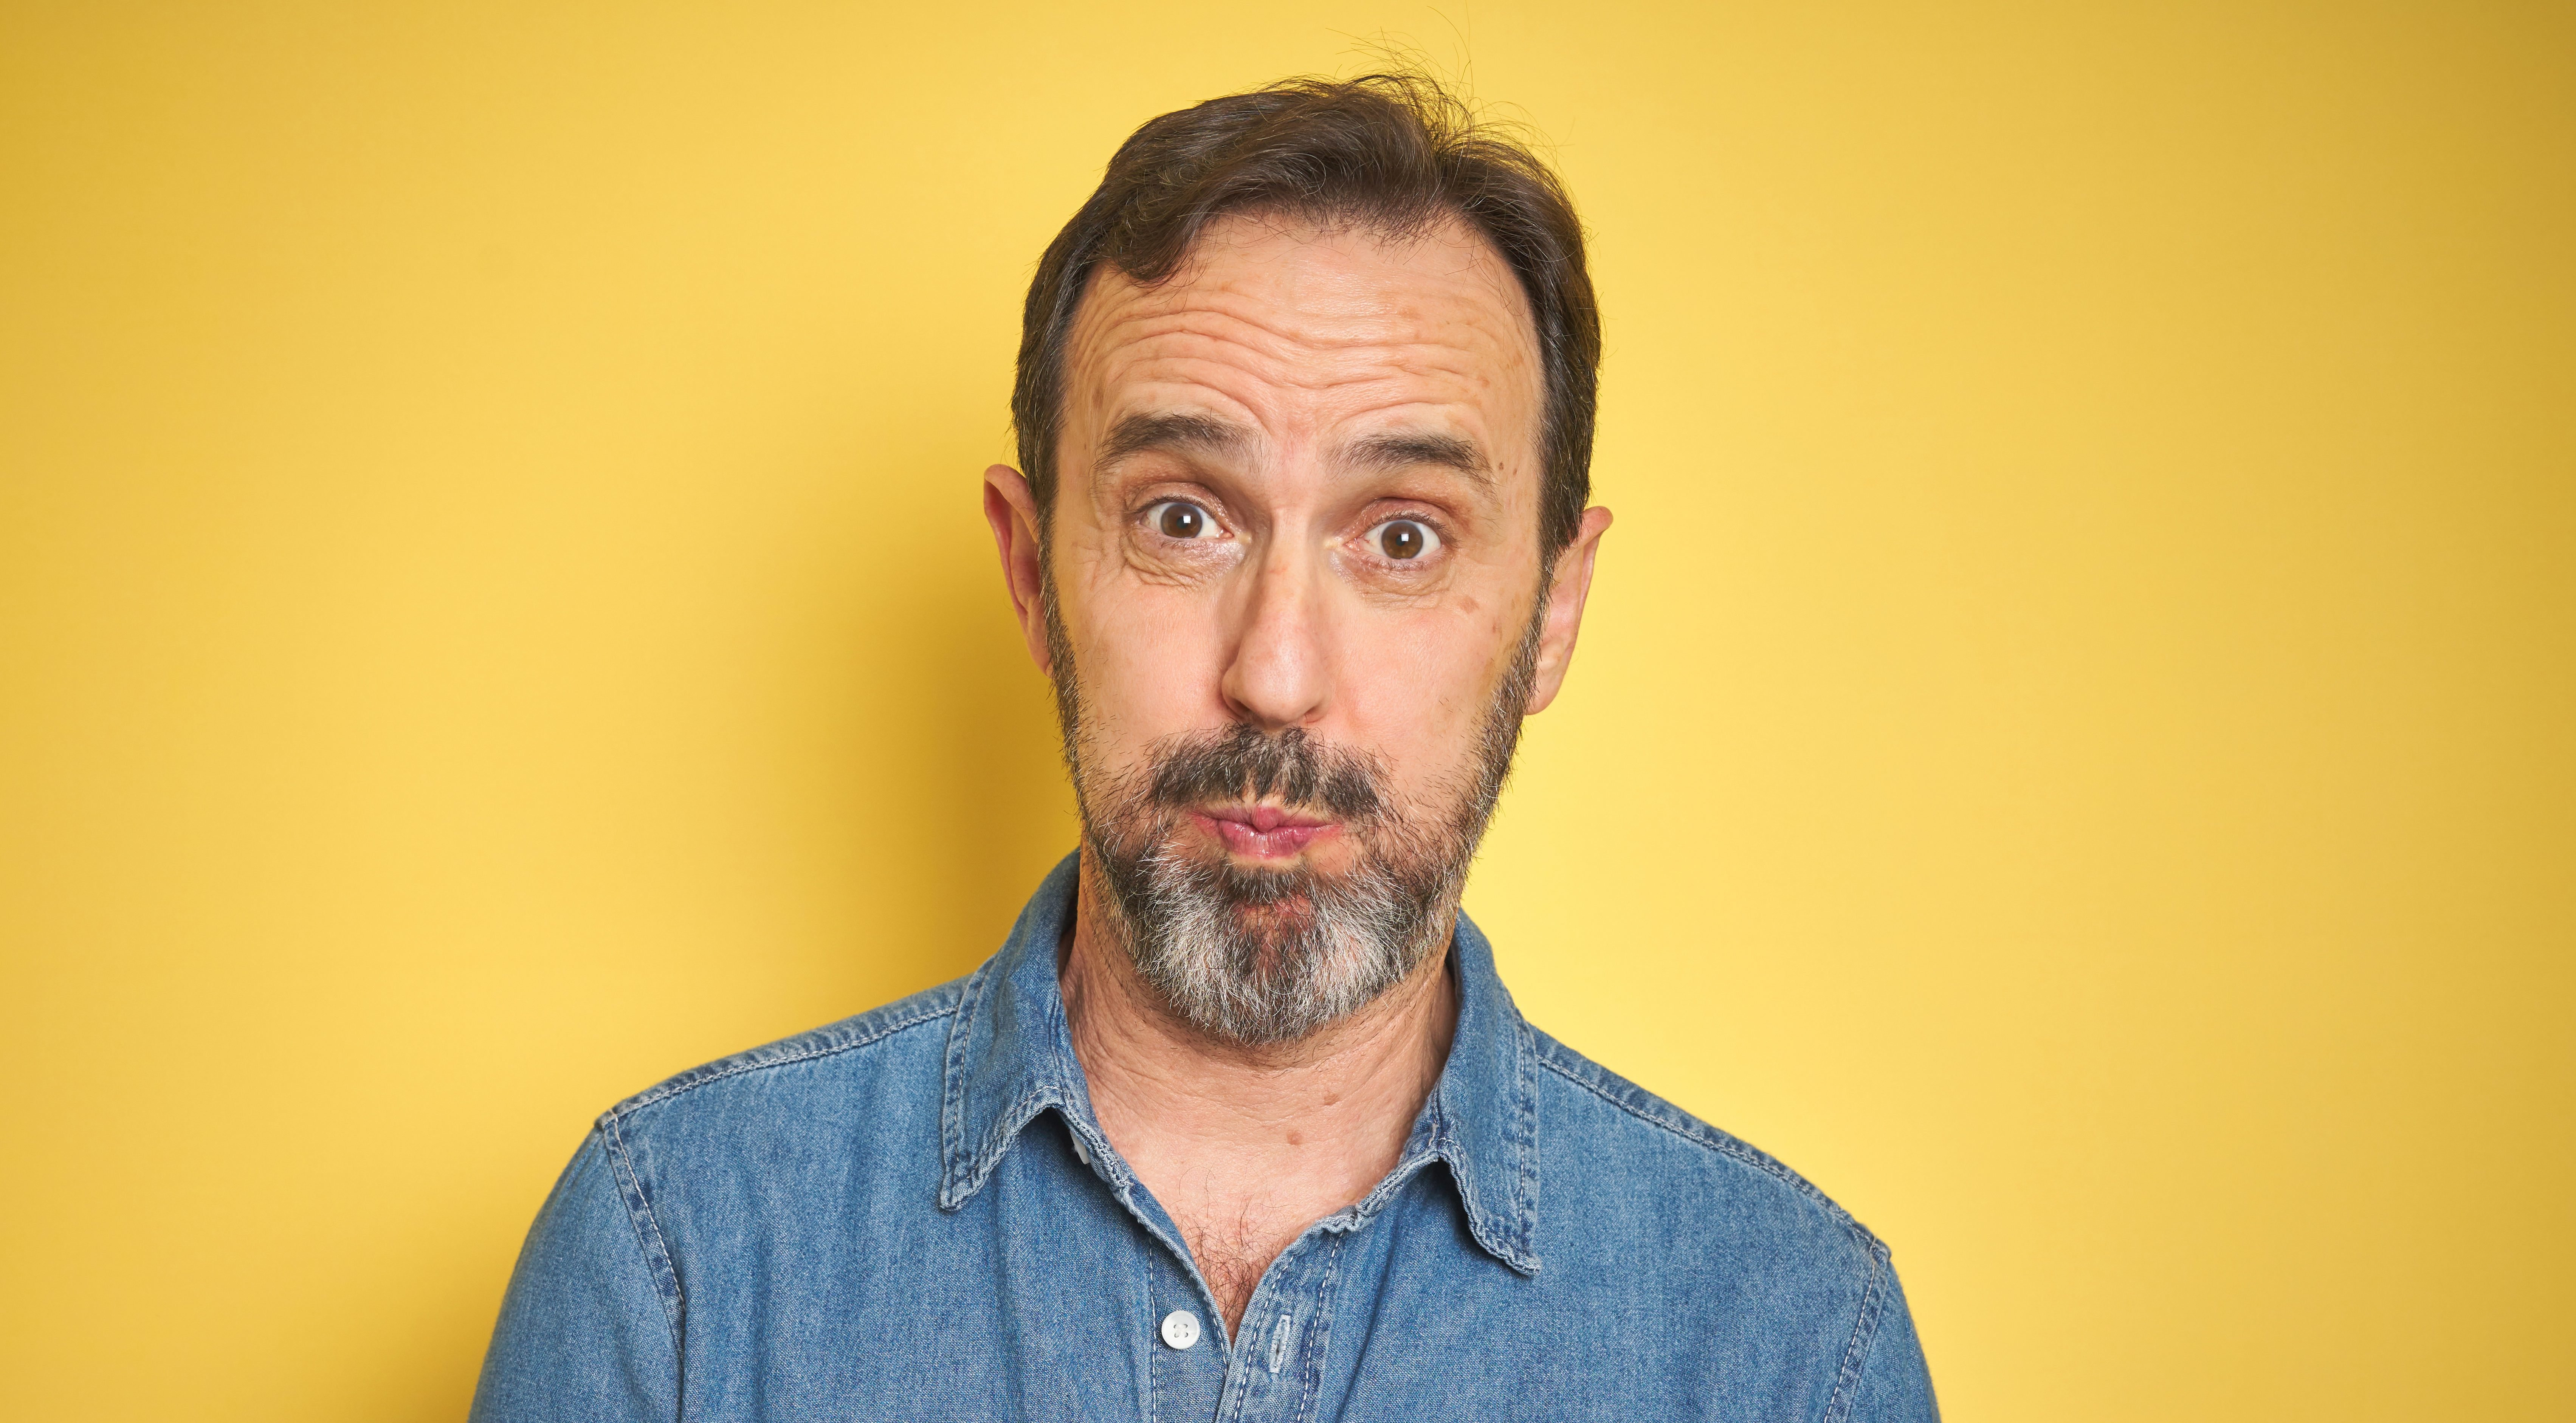 Handsome middle age senior man with grey hair over isolated yellow background puffing cheeks with funny face. Mouth inflated with air, crazy expression.